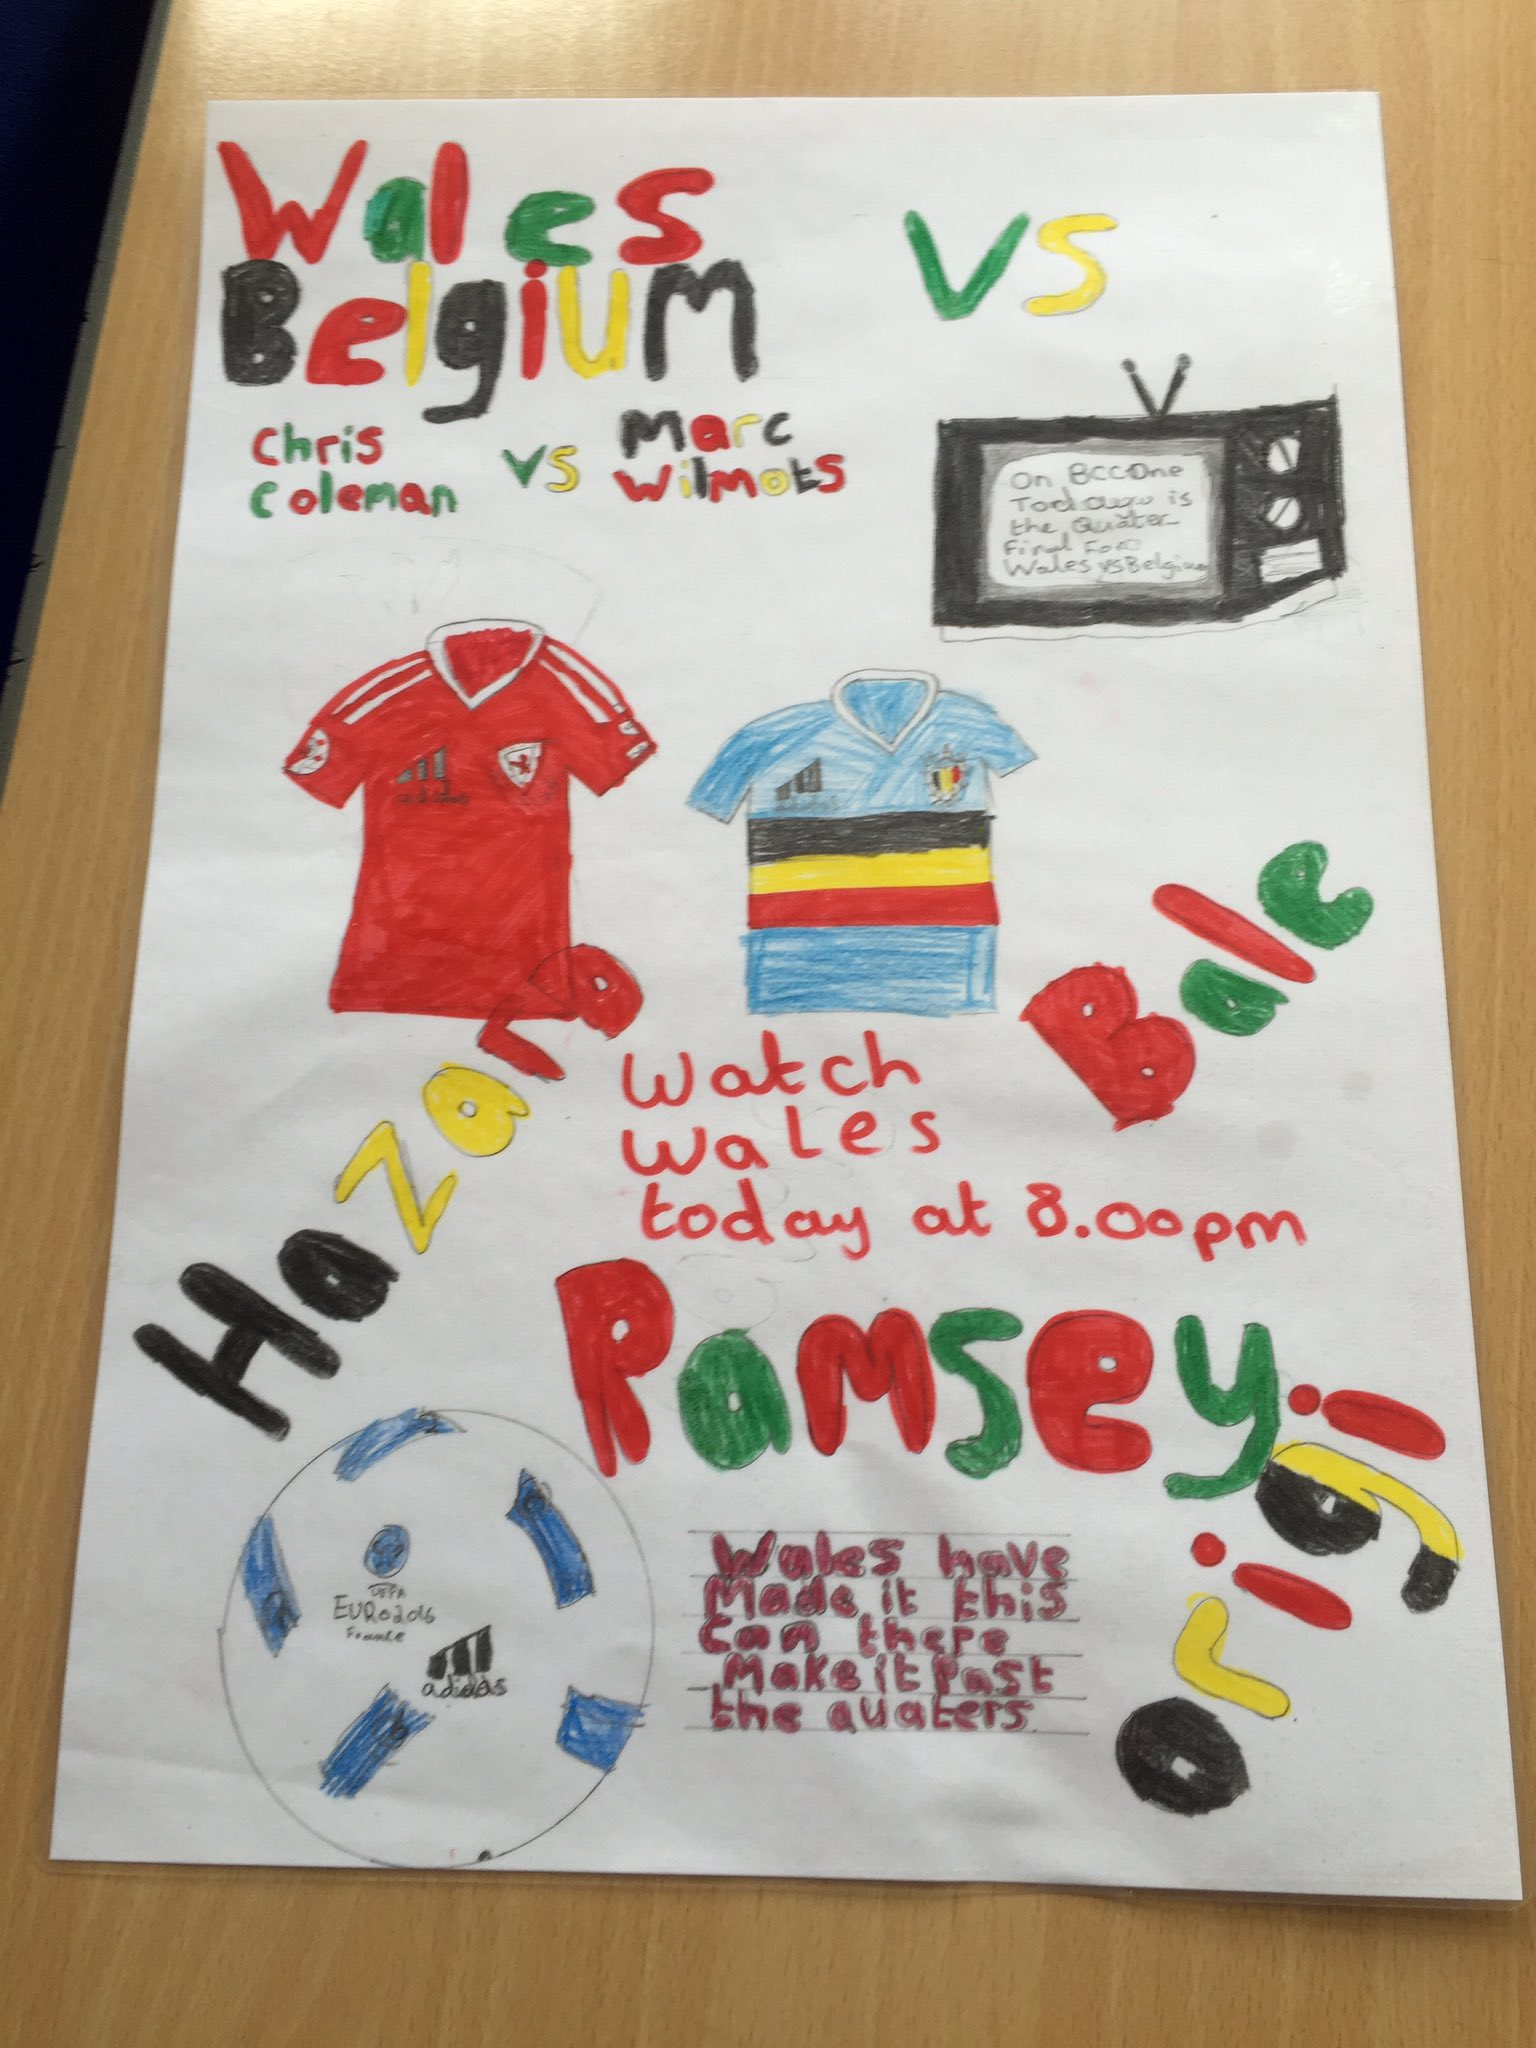 How Wales' win has created excitement in classrooms across Wales